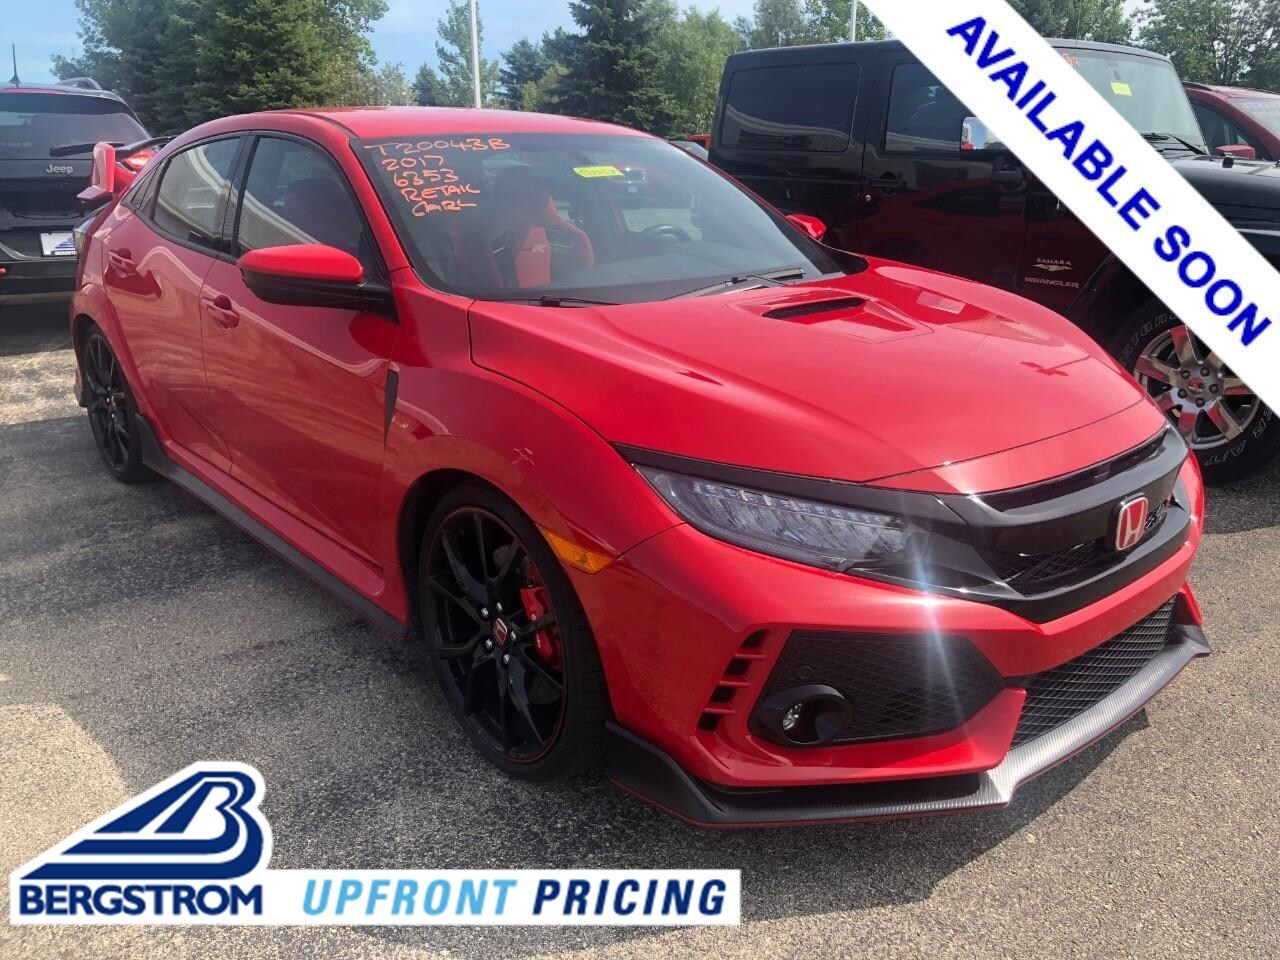 Photo Used 2017 Honda Civic Type R Touring Manual For Sale in Oshkosh, WI